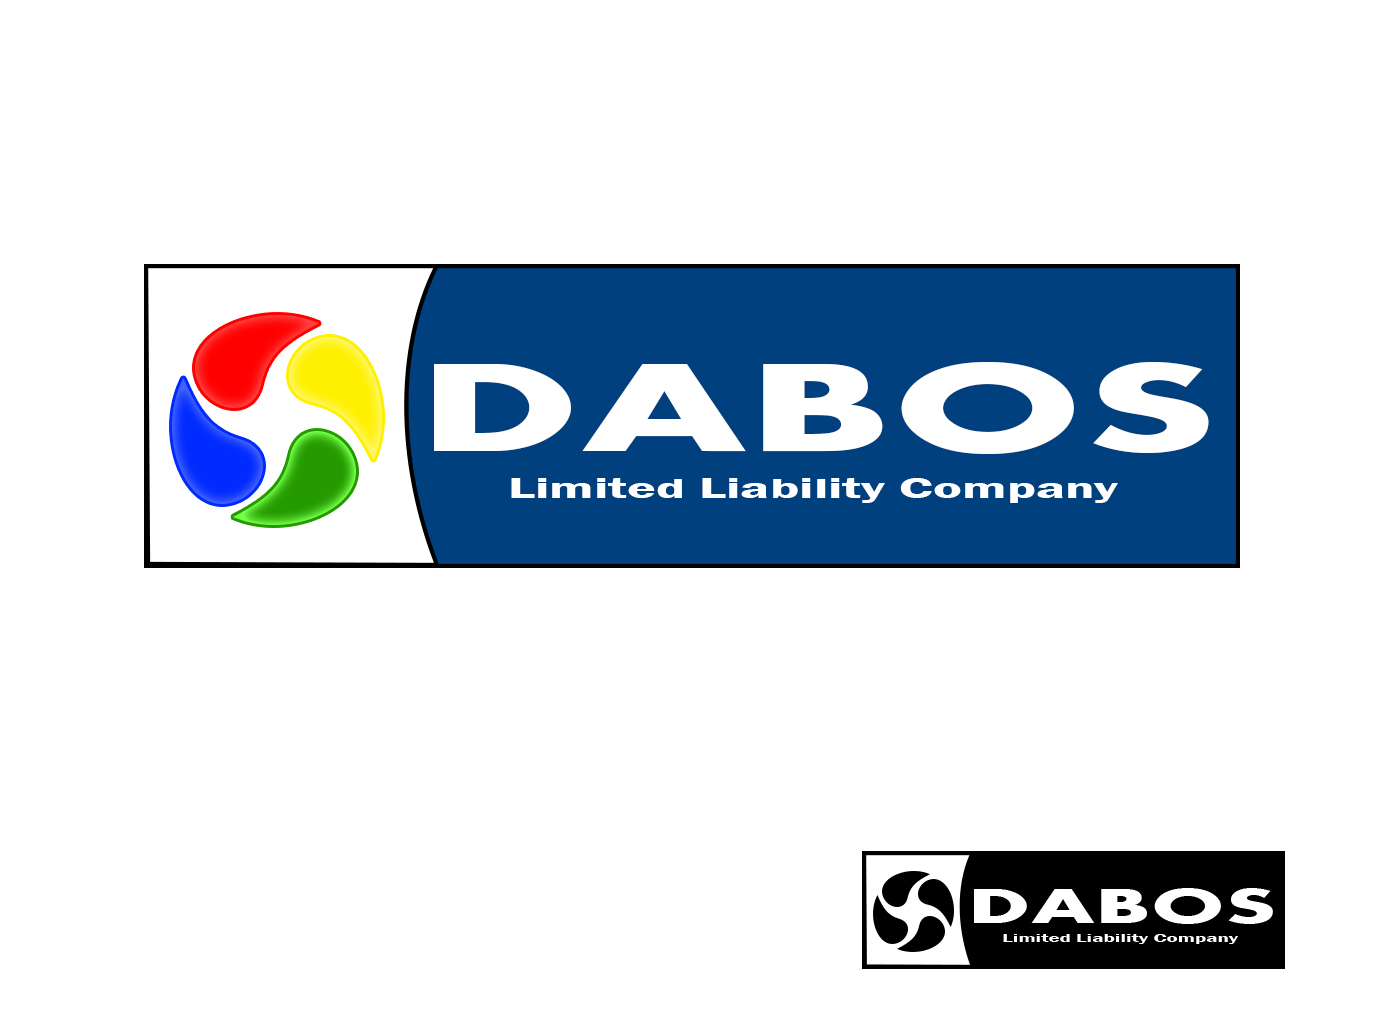 Logo Design by drunkman - Entry No. 149 in the Logo Design Contest Imaginative Logo Design for DABOS, Limited Liability Company.